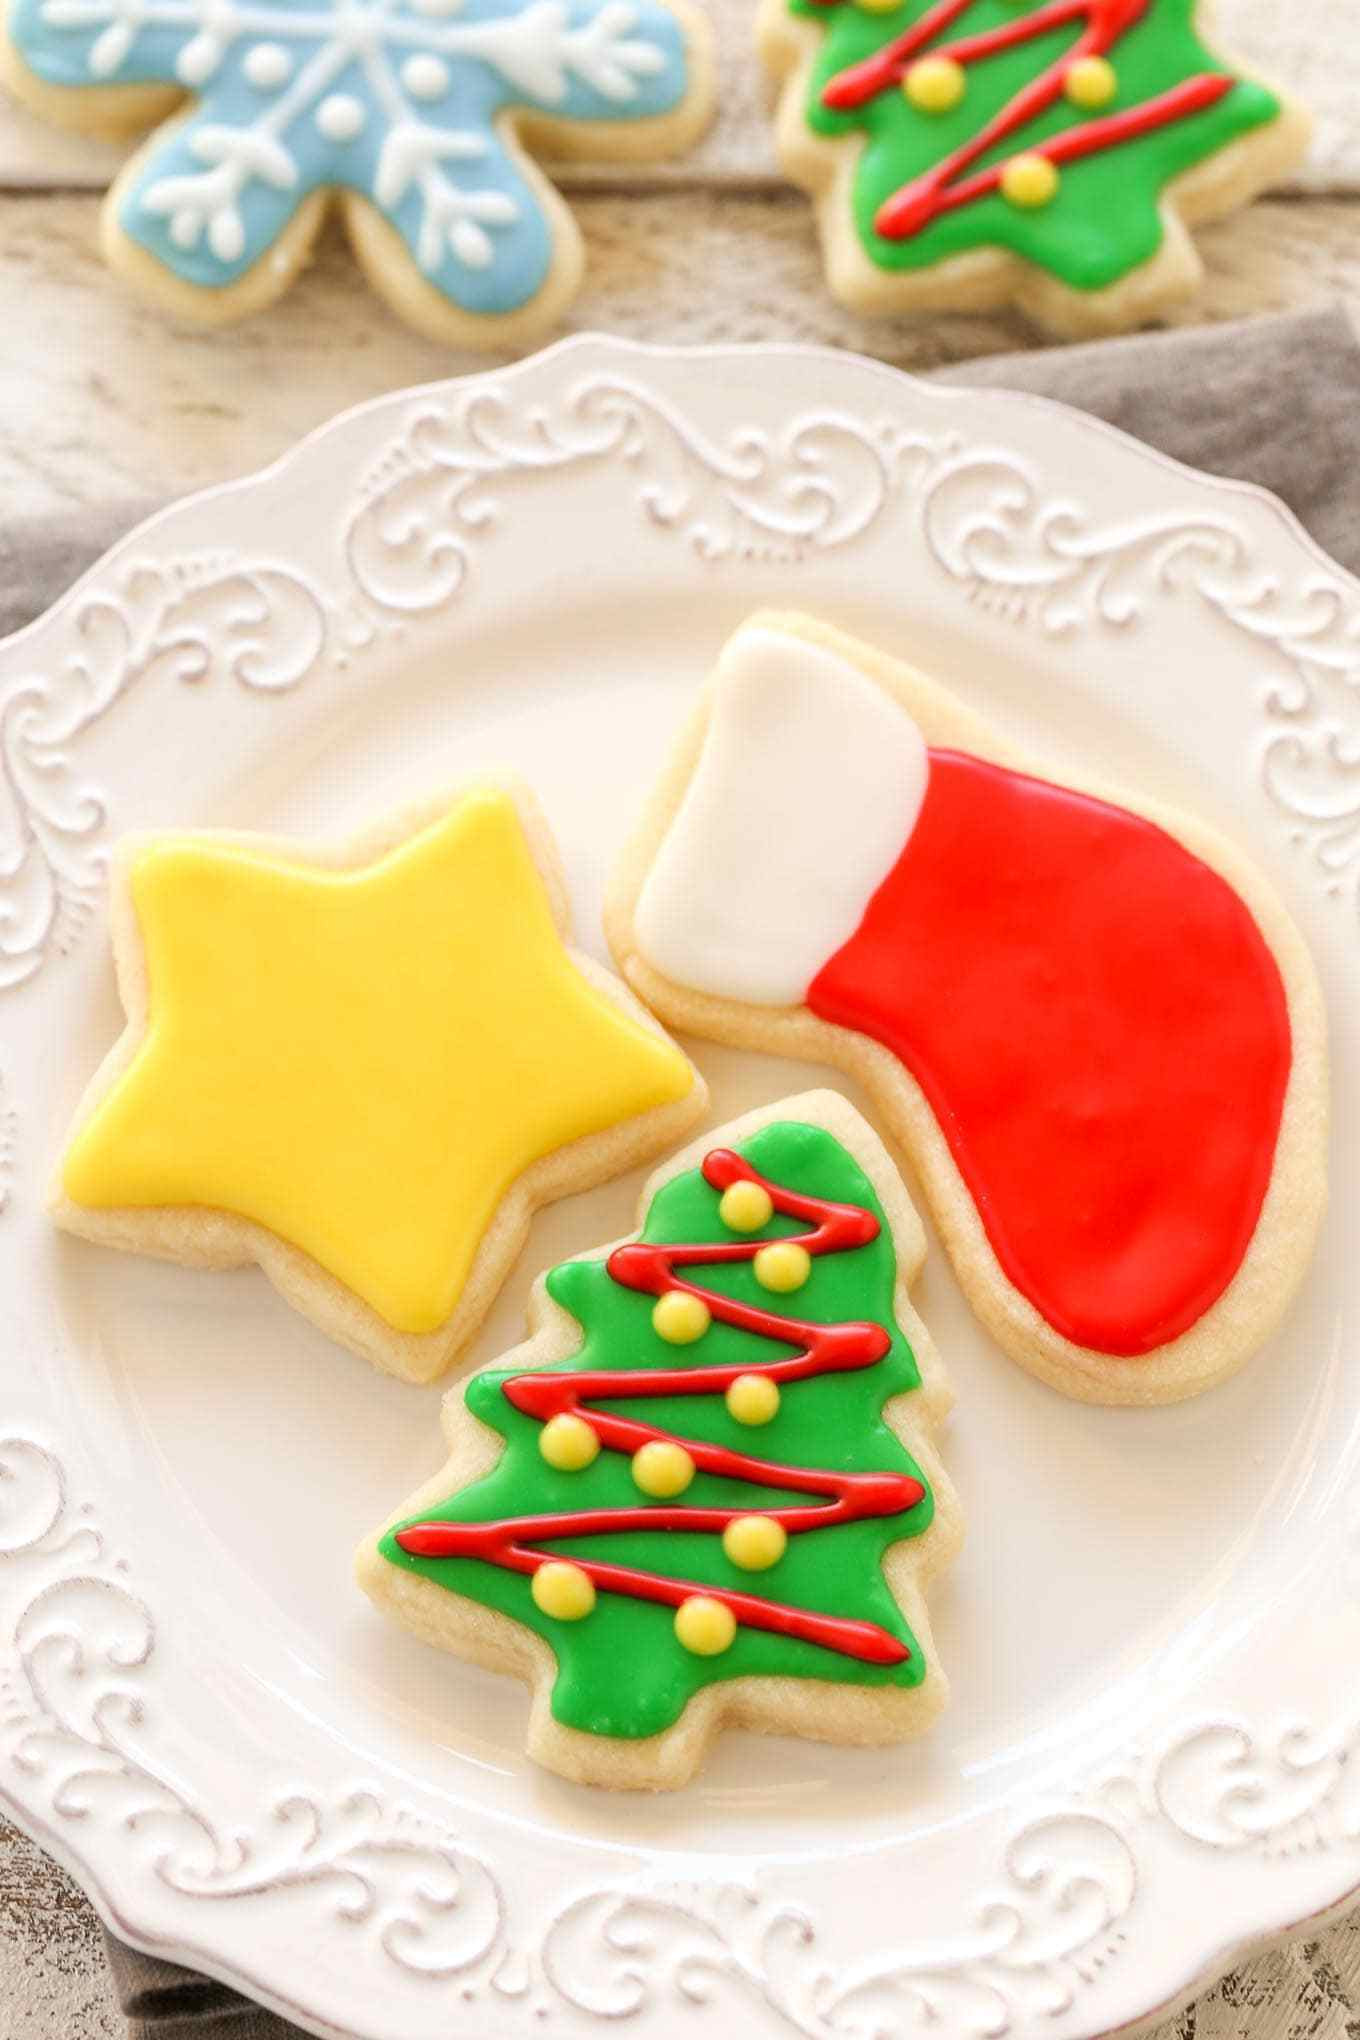 Super Easy Christmas Cookies  Soft Christmas Cut Out Sugar Cookies Live Well Bake ten